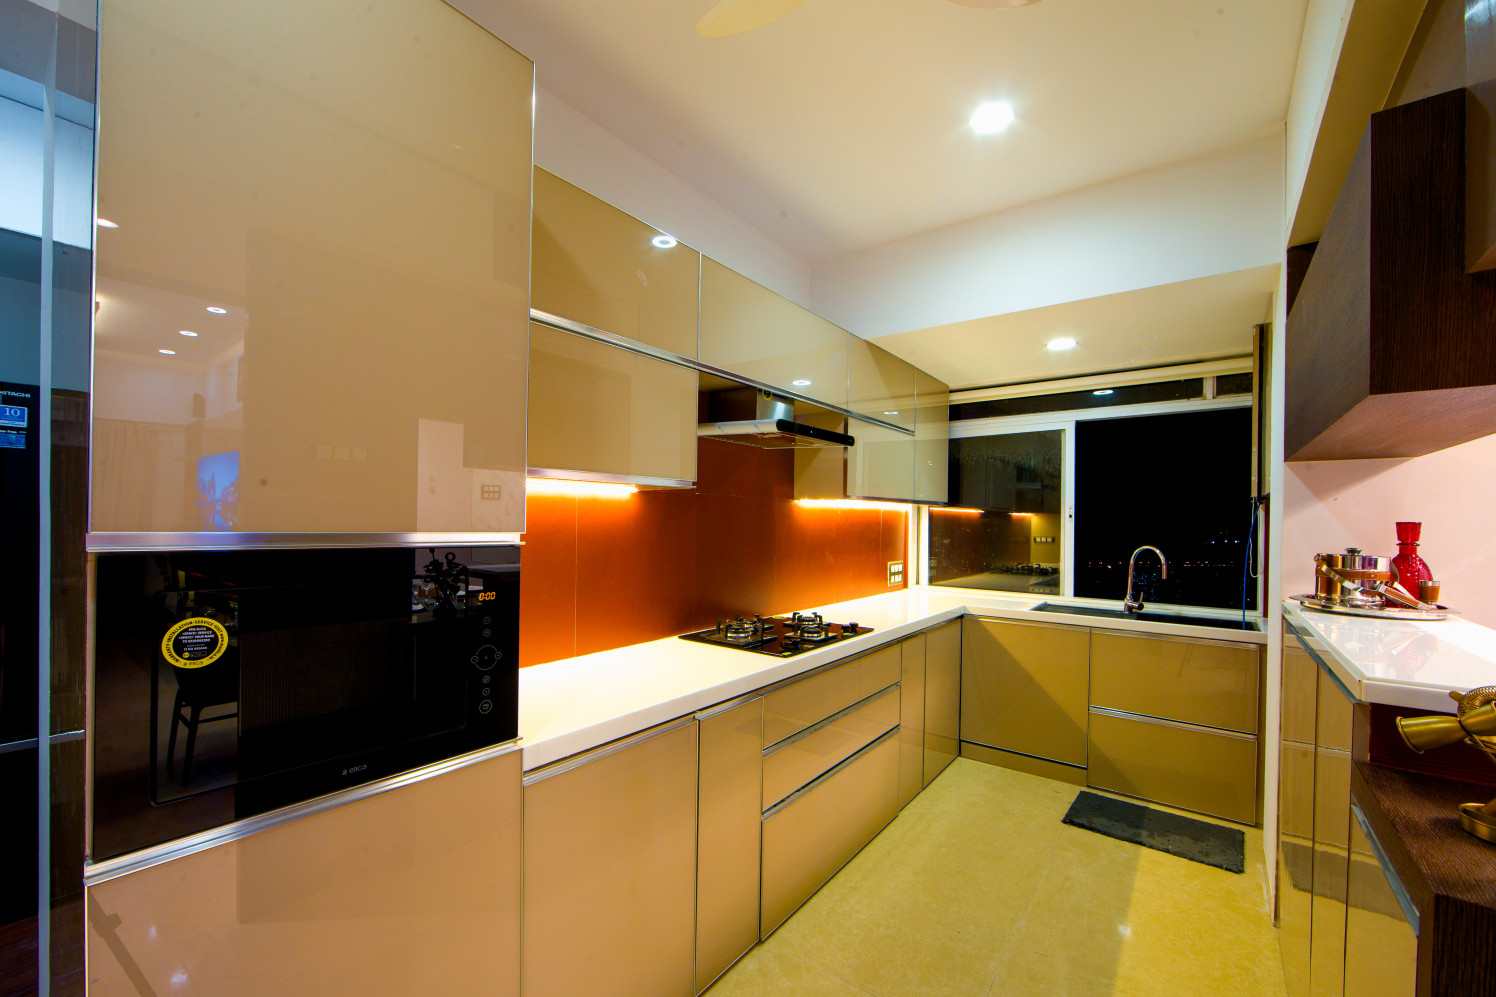 Black and White Themed Modular kITCHEN by Yogesh